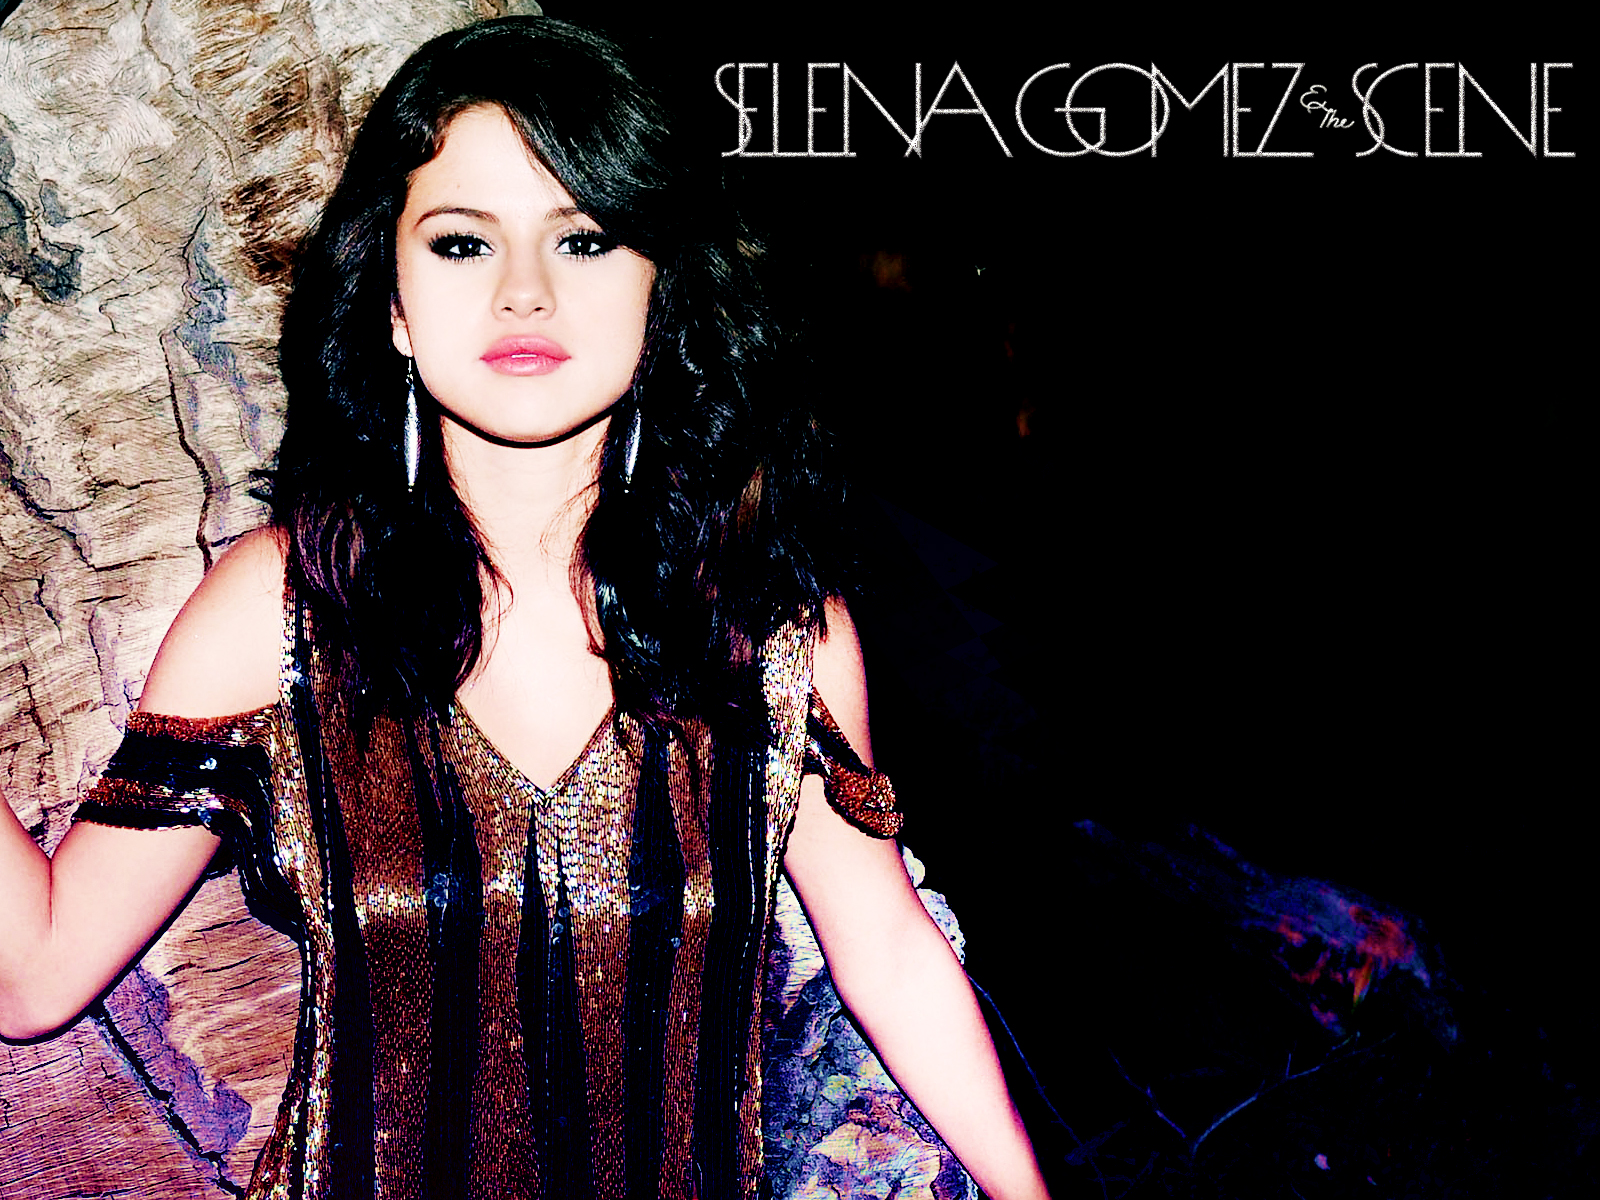 Selena Gomez Wallpapers -Sel-by-Dave-Latest-Wallpapers-EXclUsIvE-UNTAGGED-selena-gomez-27339187-1600-1200